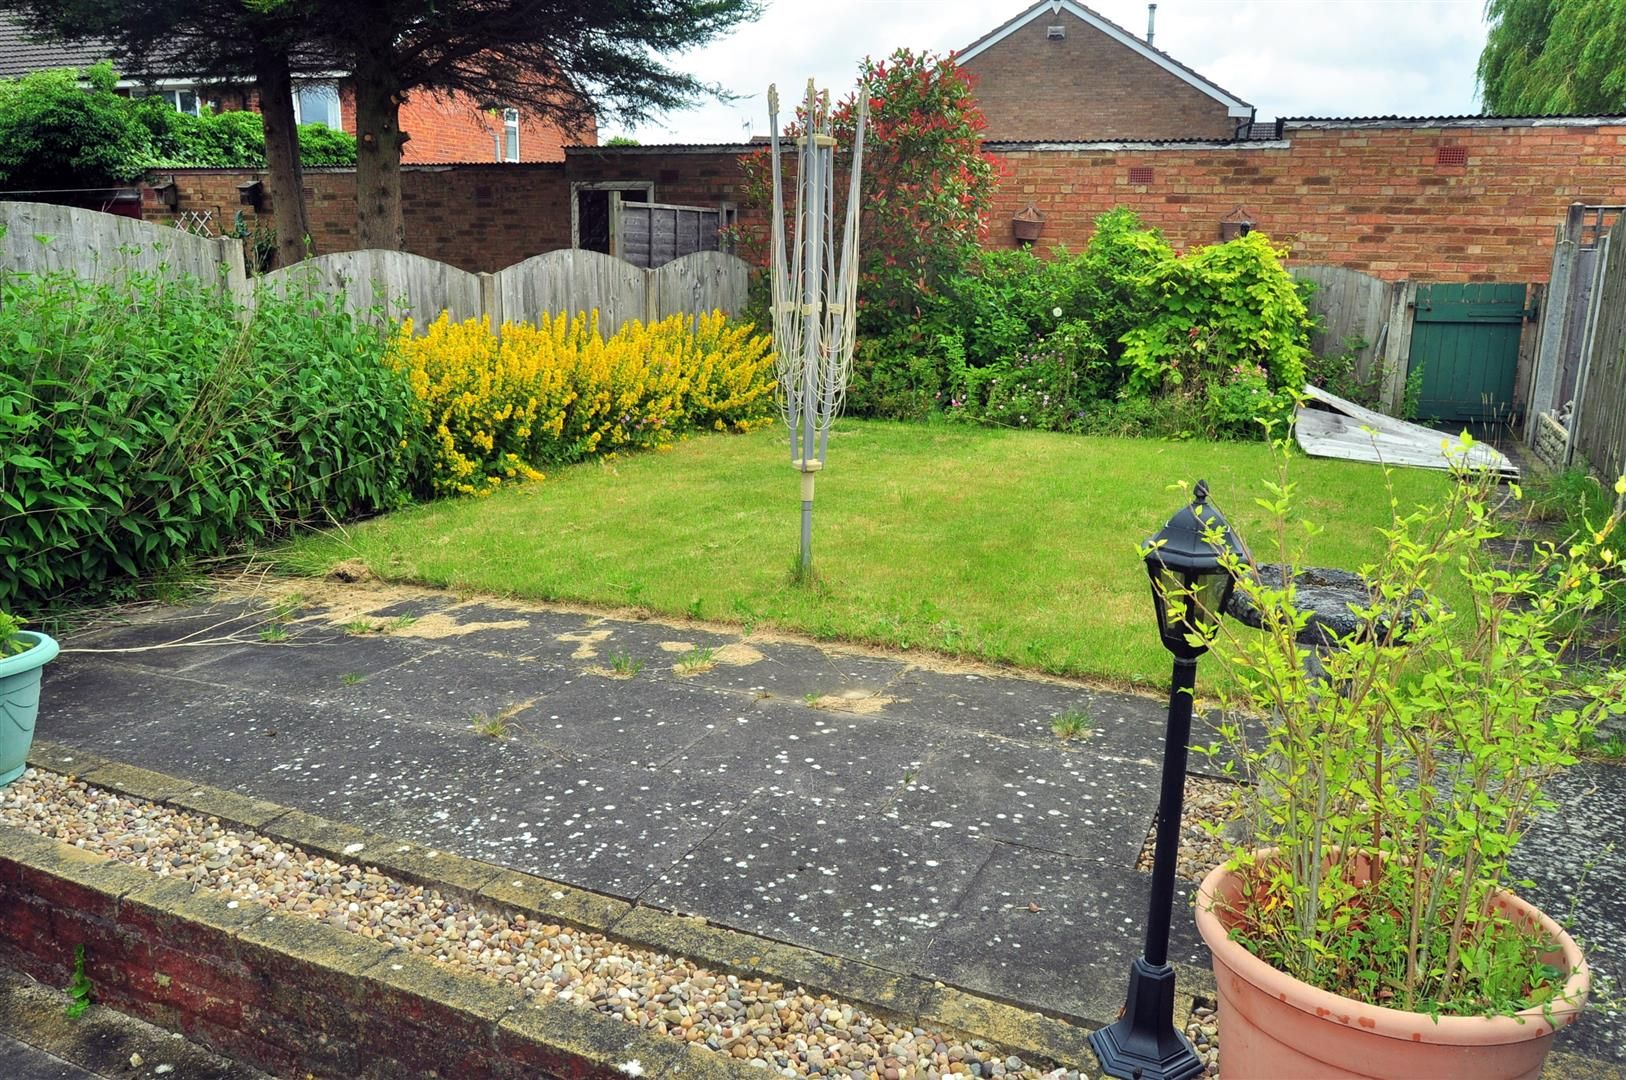 3 bed end-of-terrace for sale in Quinton 12